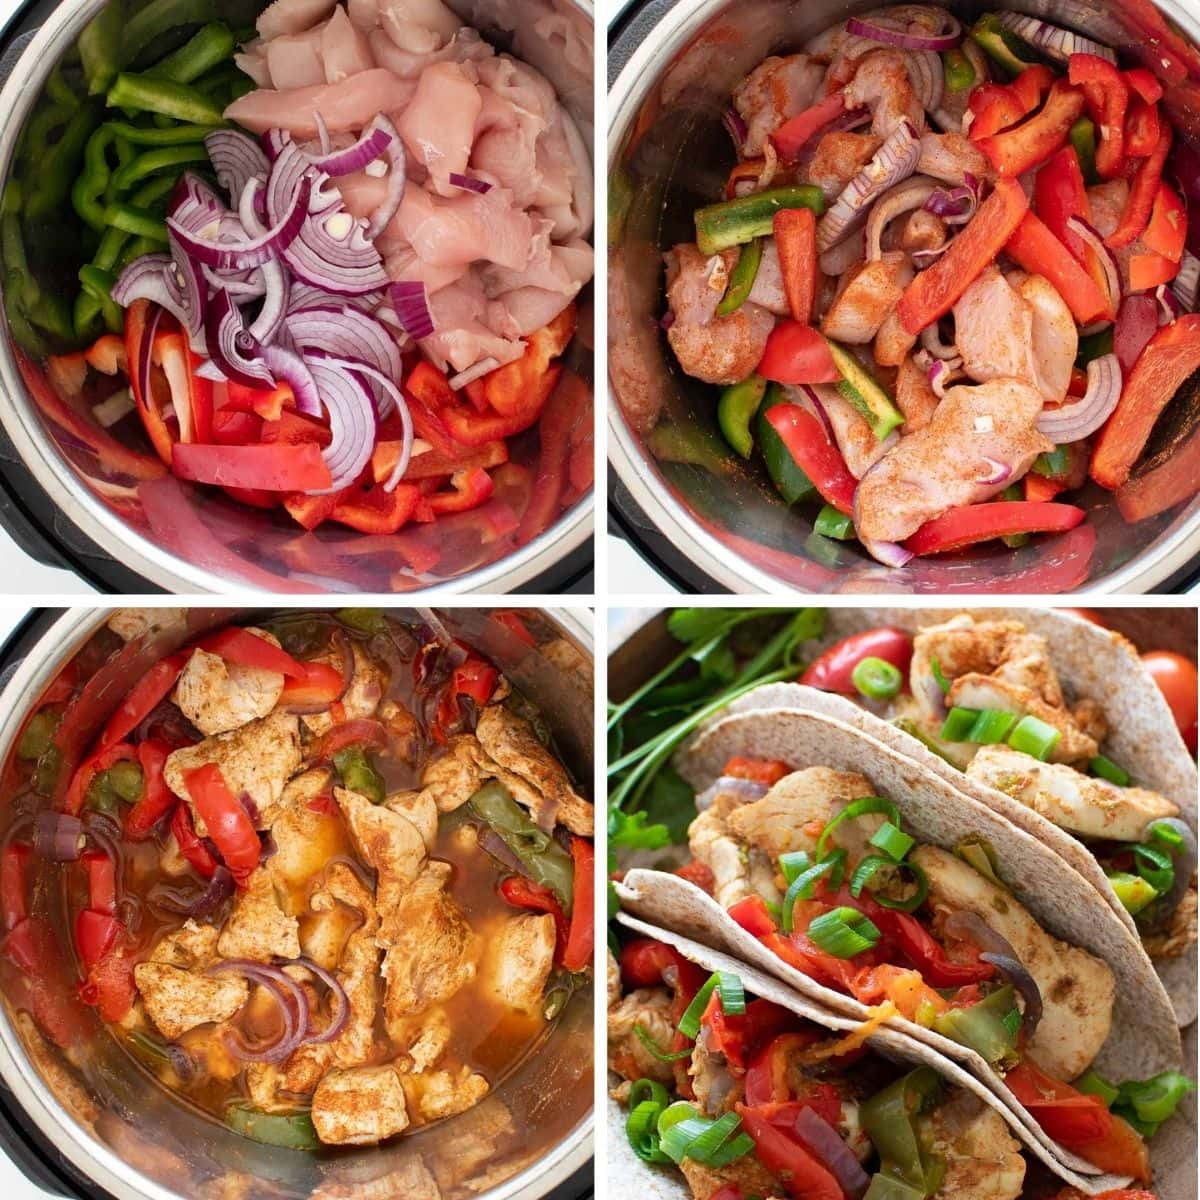 Step by step images showing how to make Instant Pot fajitas.